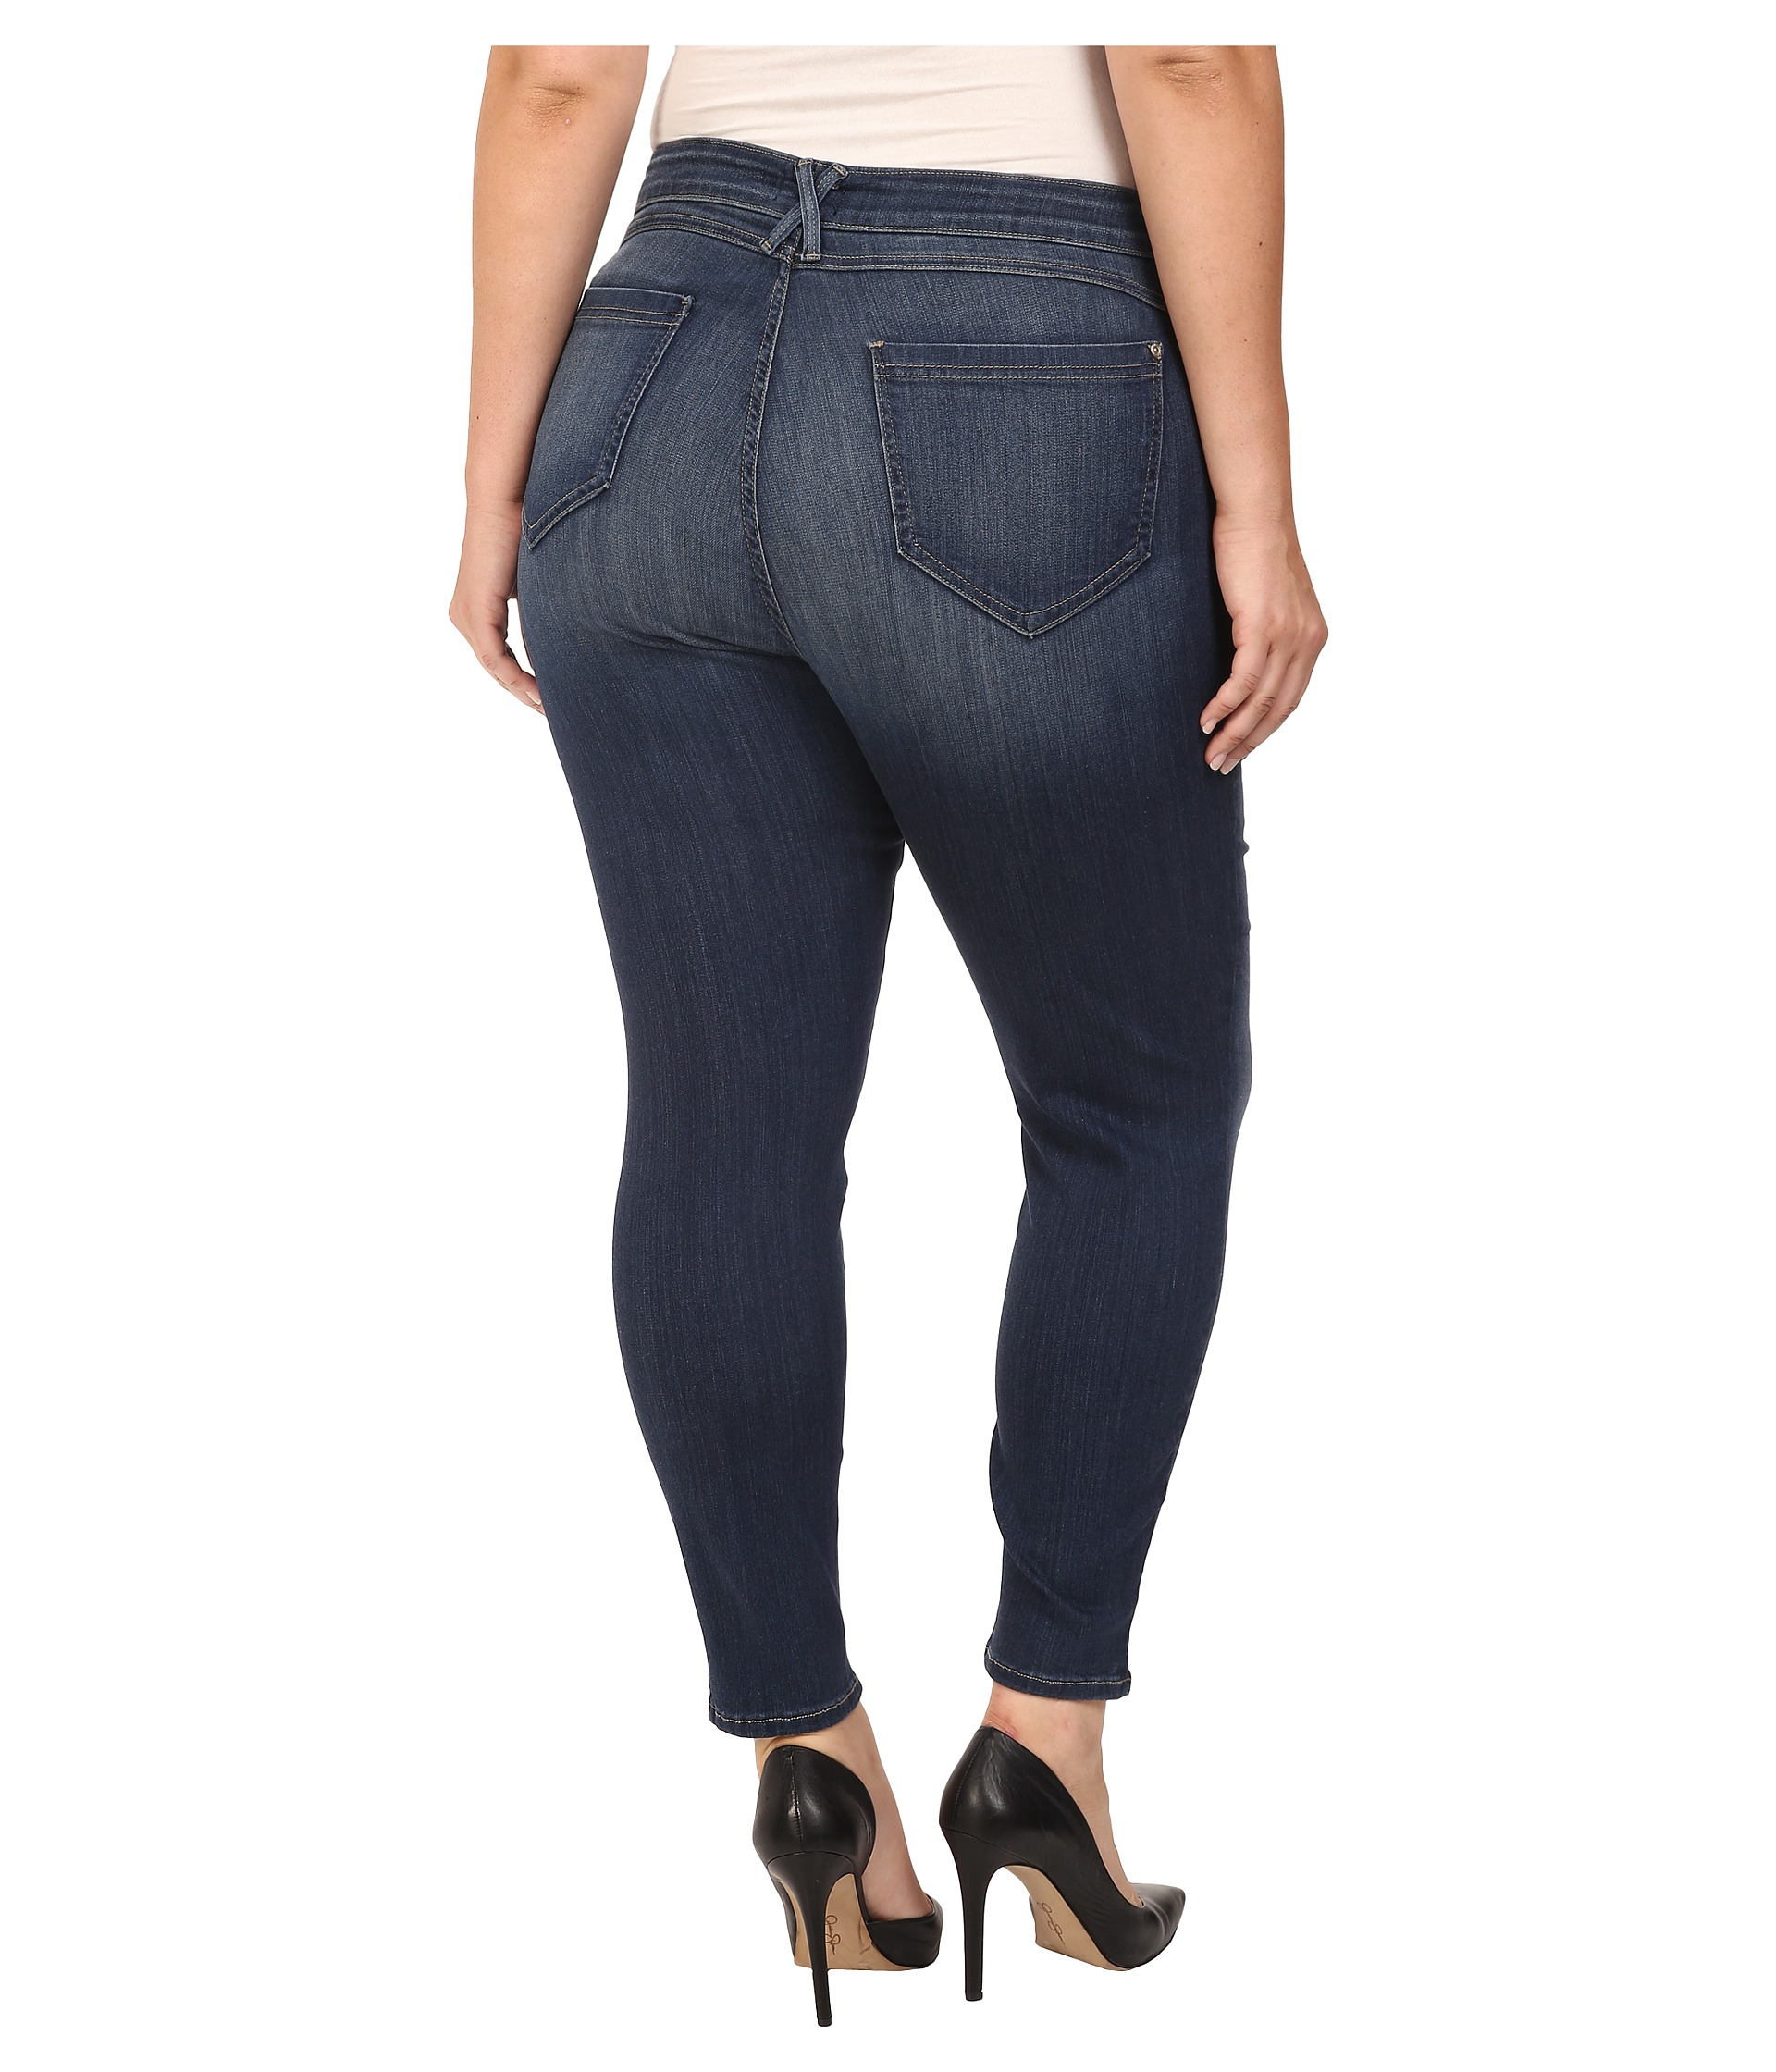 Wow best jeans ever!!!! Size 18's fit really comfy size 16's a lil tight. I have total like 8 pairs all in the light jean version. I get a lot of compliments on the from women and men alike. I highly recommend for plus size women. I'm 5 feet tall zero inches lbs. I've included pictures.4/5().